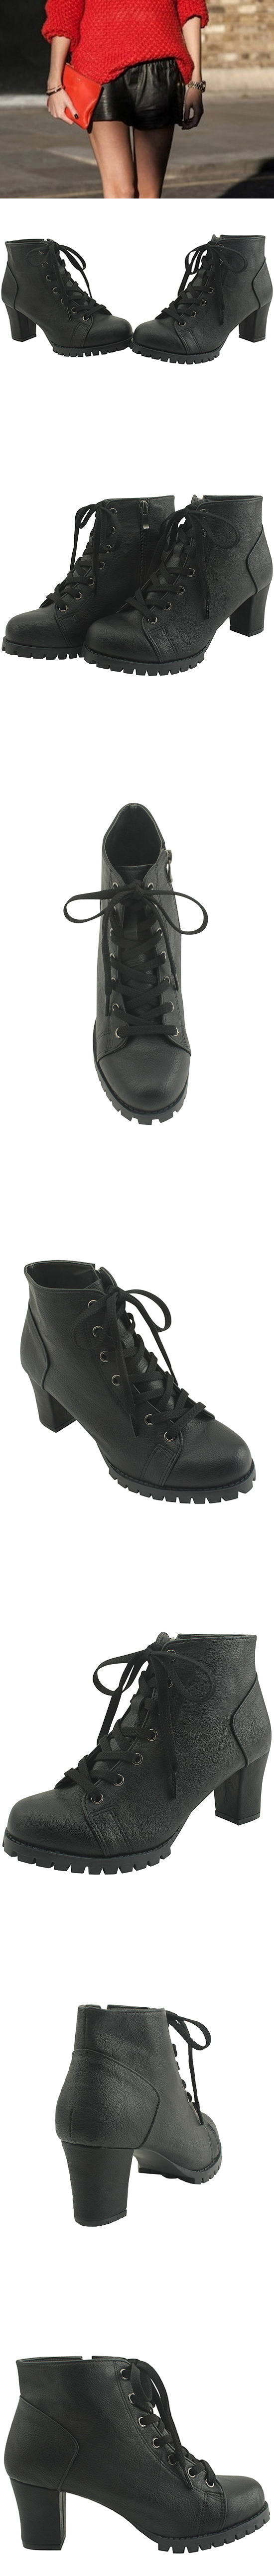 Lace-up walker high heels